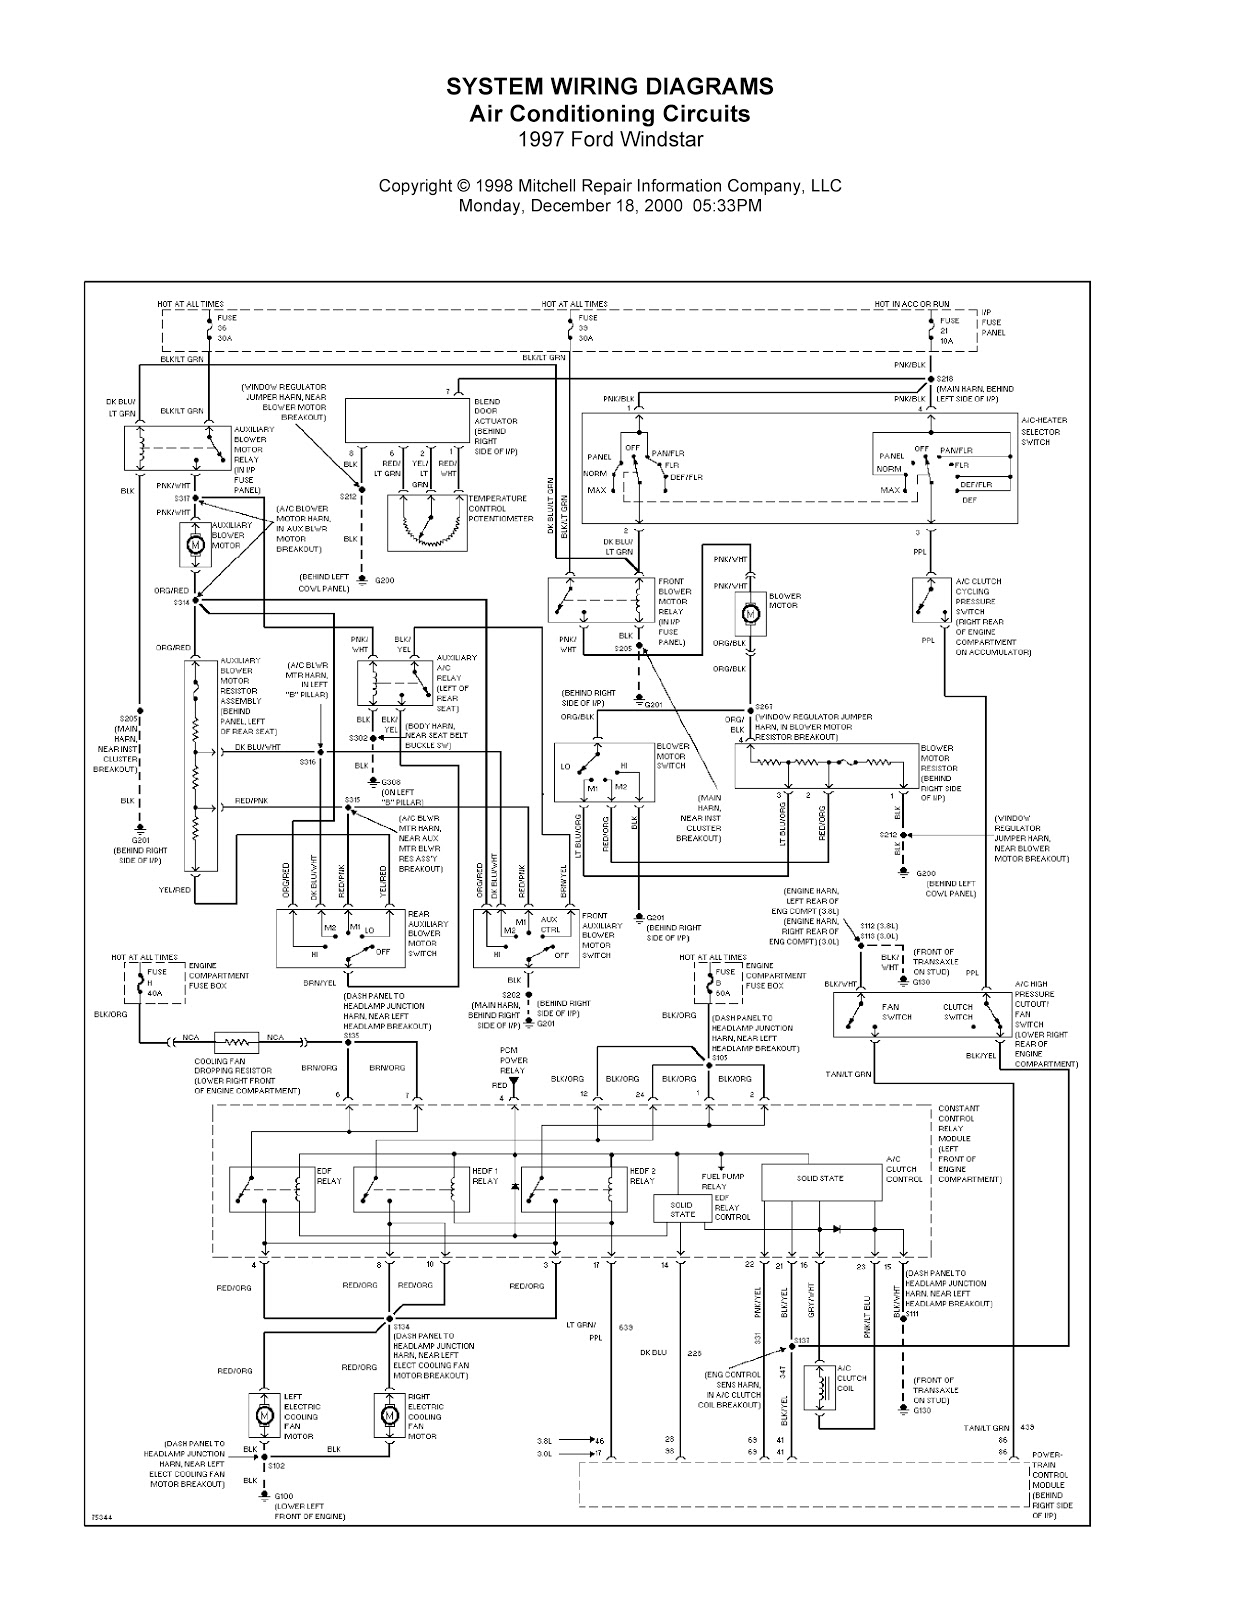 0001 cooling diagram of a 2000 ford windstar 100 images radiator 2000 ford windstar fuse box diagram at gsmportal.co